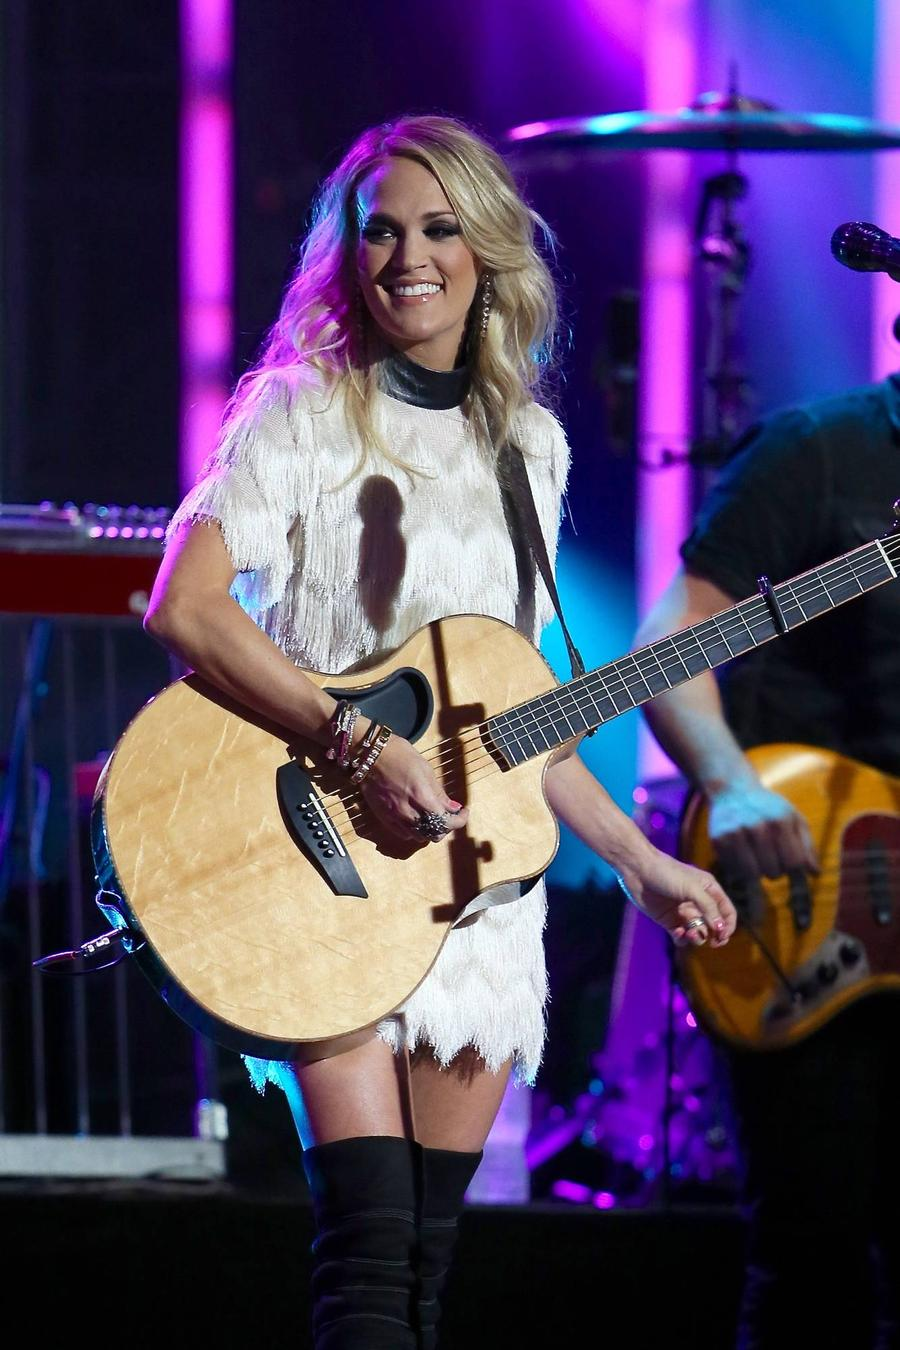 Carrie Underwood To Honour Military Families On Tour